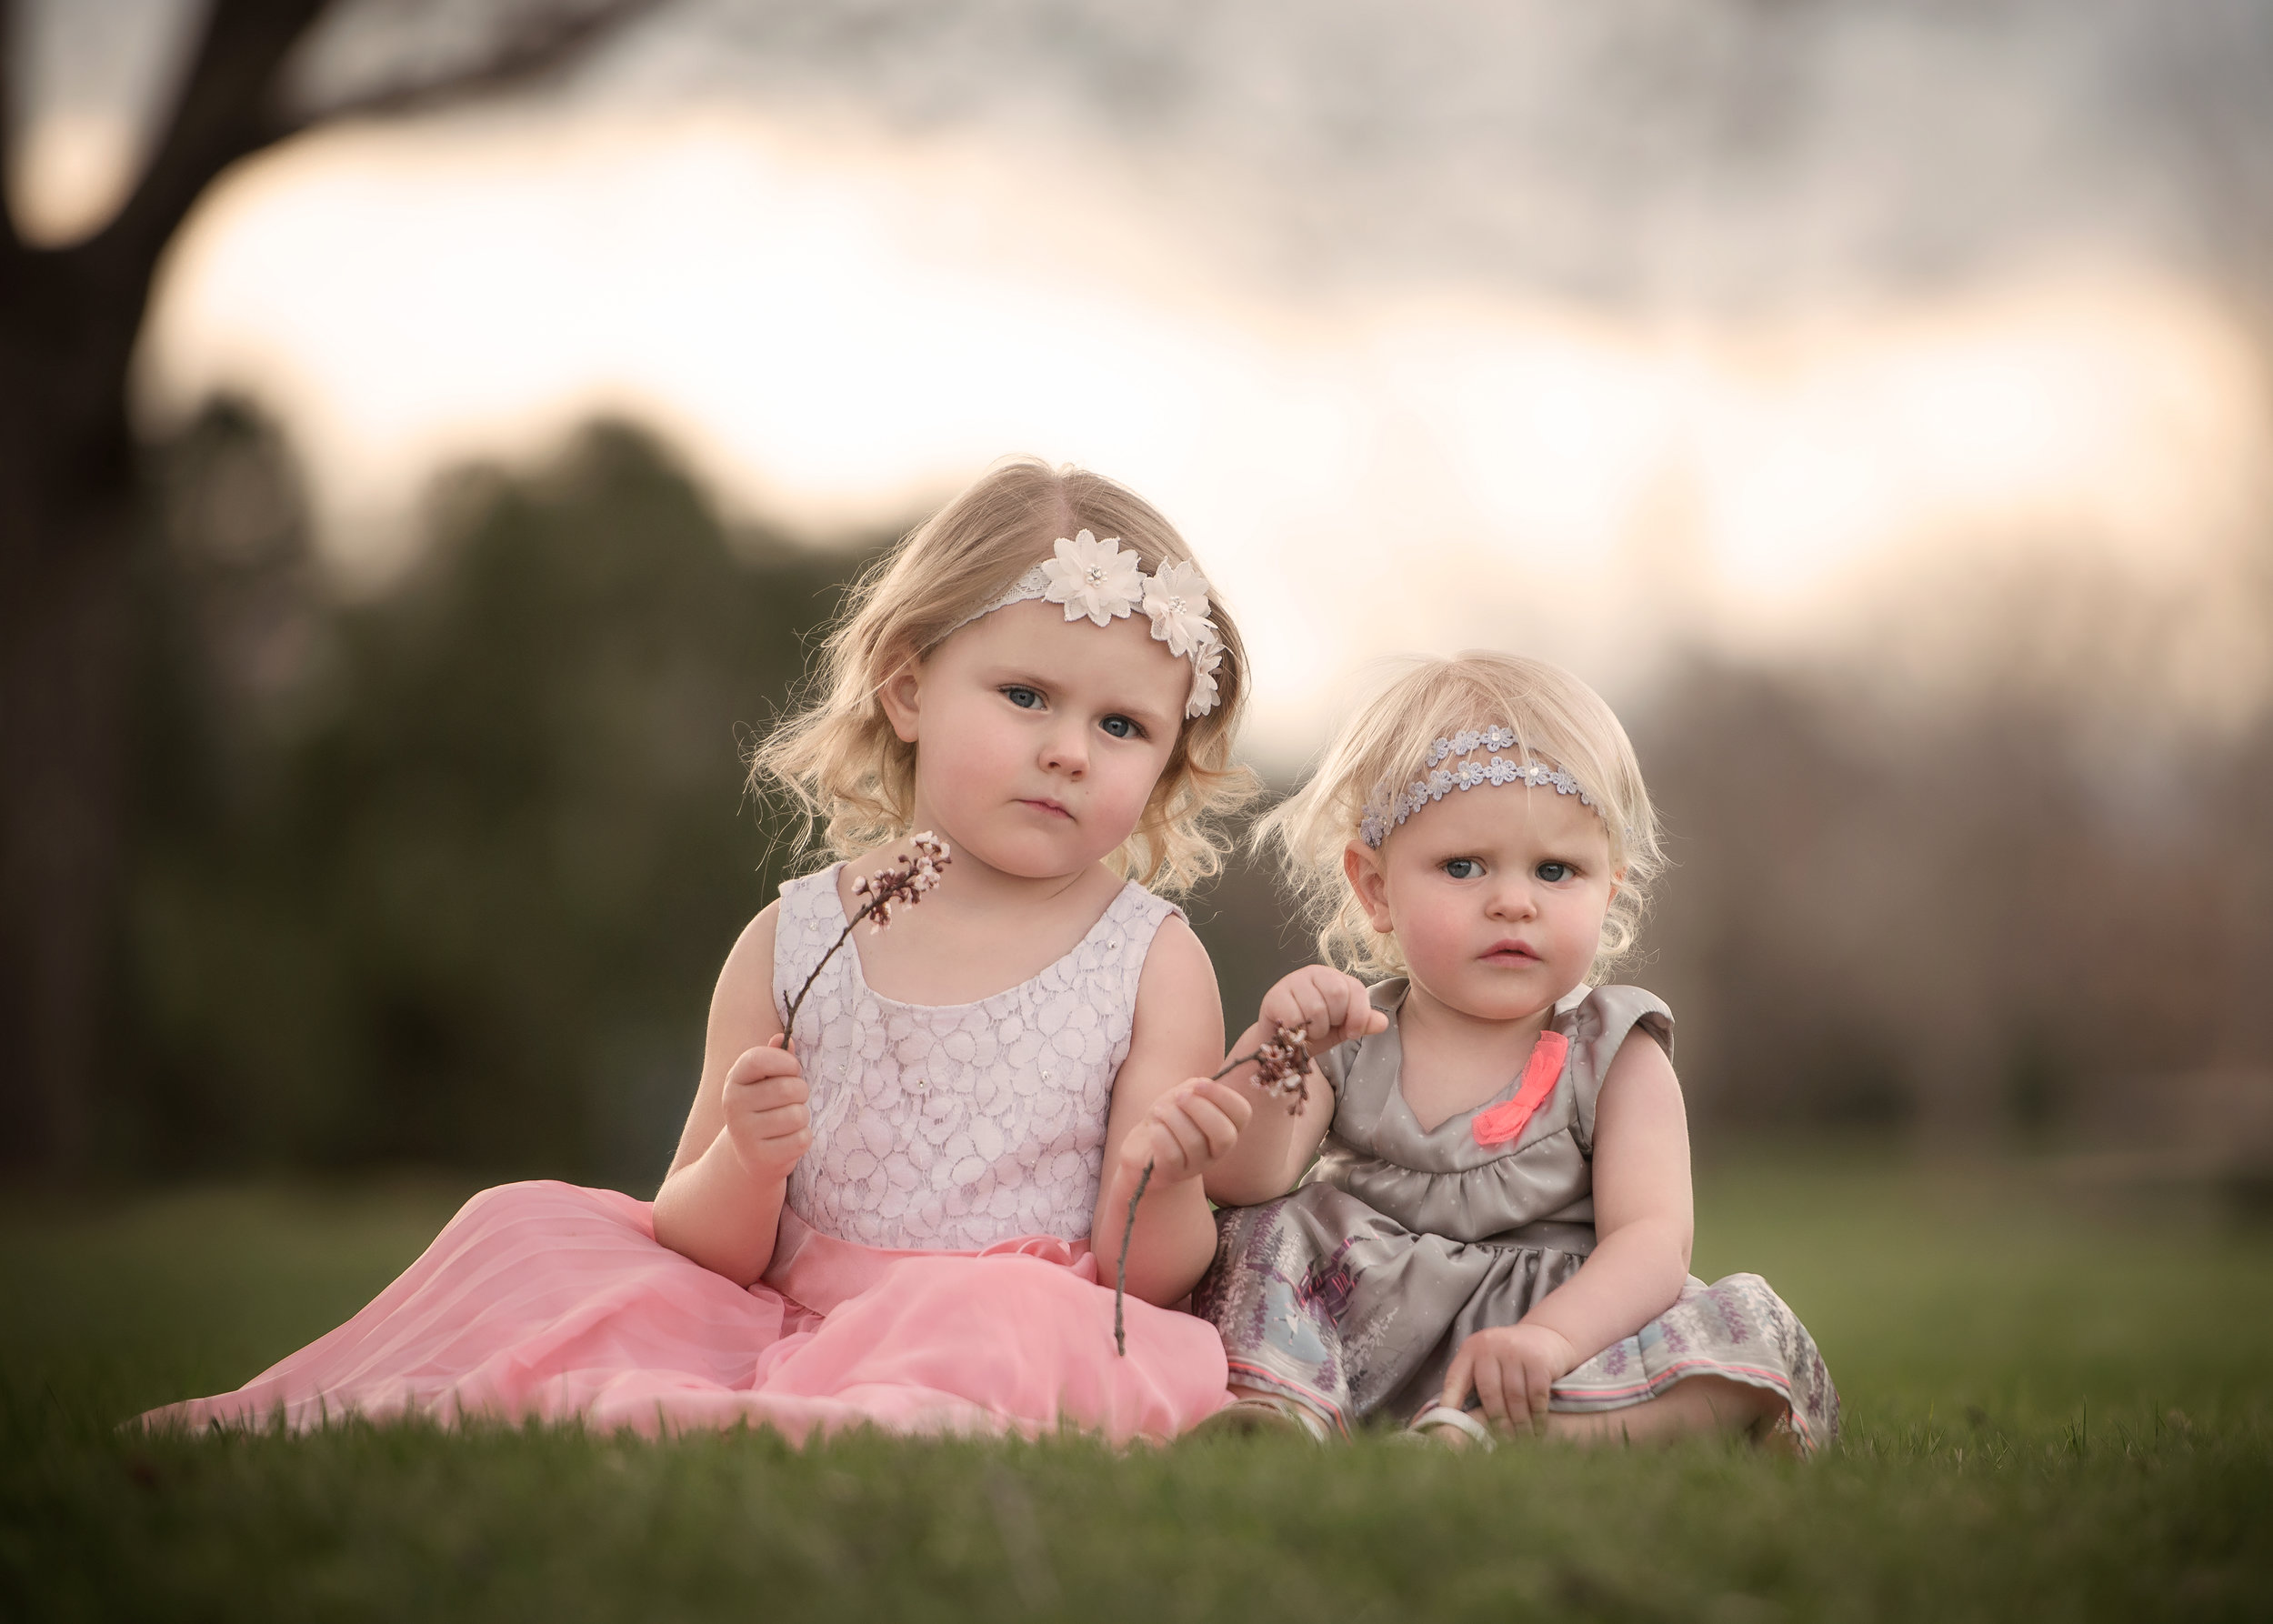 Children Portraiture Sessions Include… - Customized USB drive with fully fine art edited digitals and storage boxProfessional PrintsUsage of dresses or costumes from my collectionImagination portrait add-on3 collections to choose fromPackages start at $449 + tax